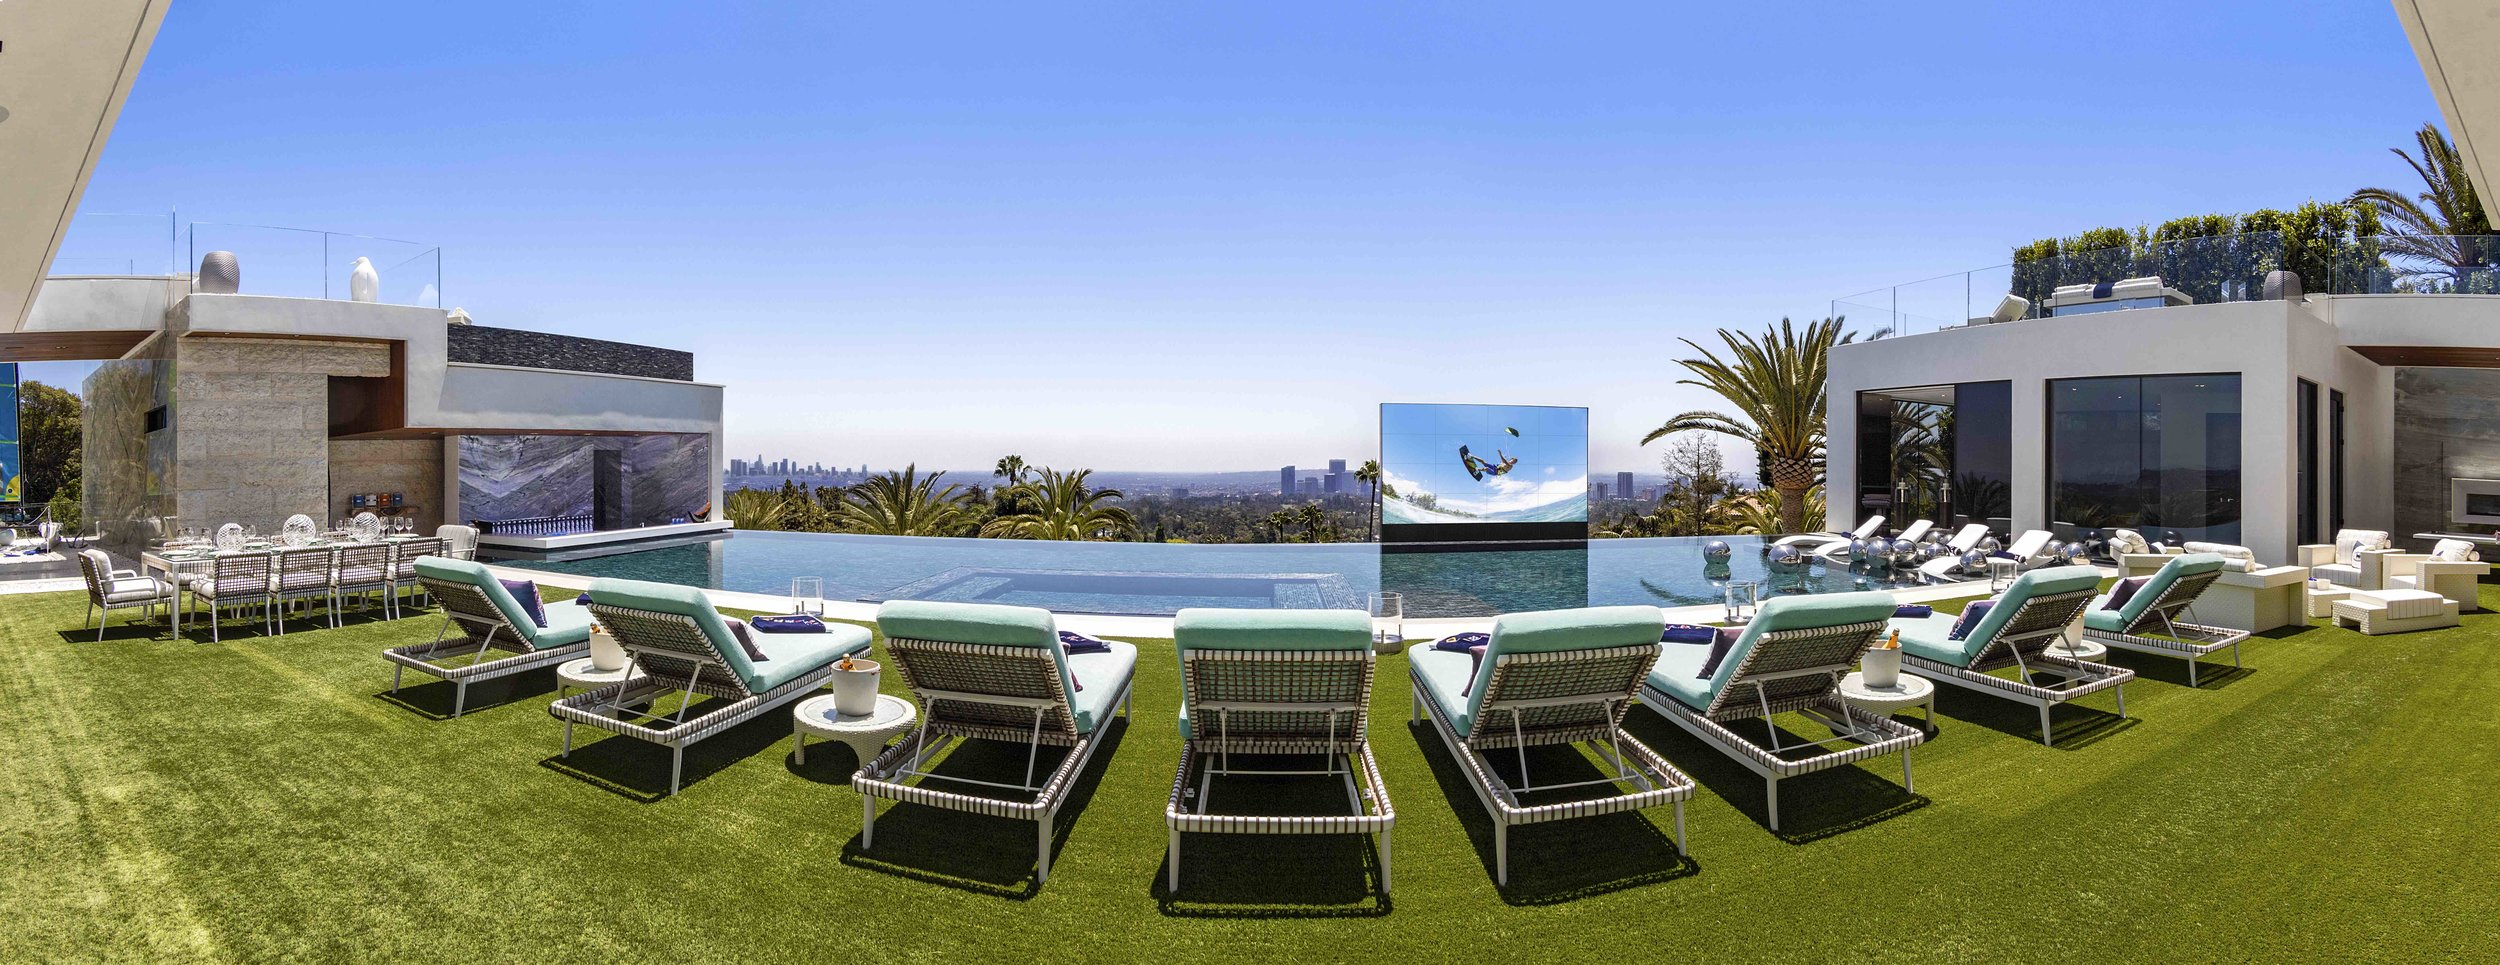 The pool features a swim-up bar and a special hydraulic TV screen